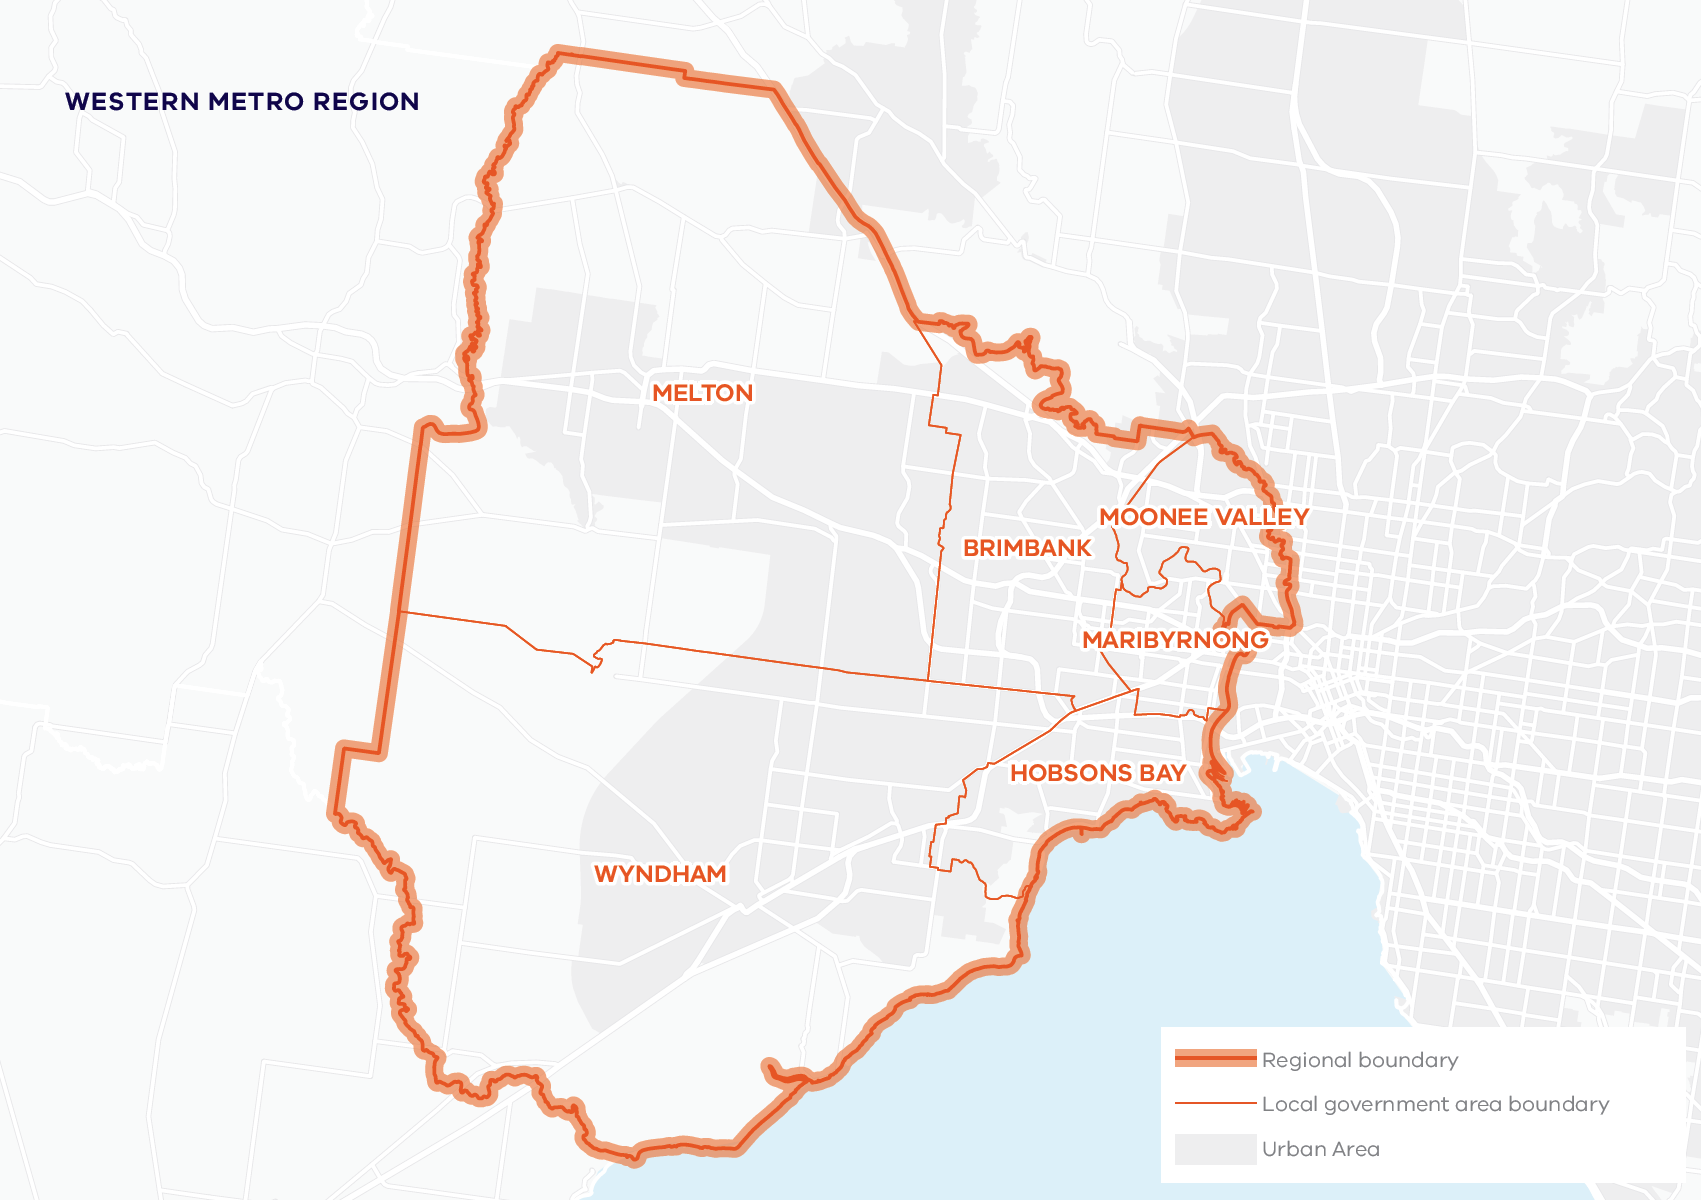 This map shows the boundary for the Western Metro region and local government areas. The Western Metro region includes Brimbank, Hobsons Bay, Maribyrnong, Melton, Moonee Valley and Wyndham local government areas.